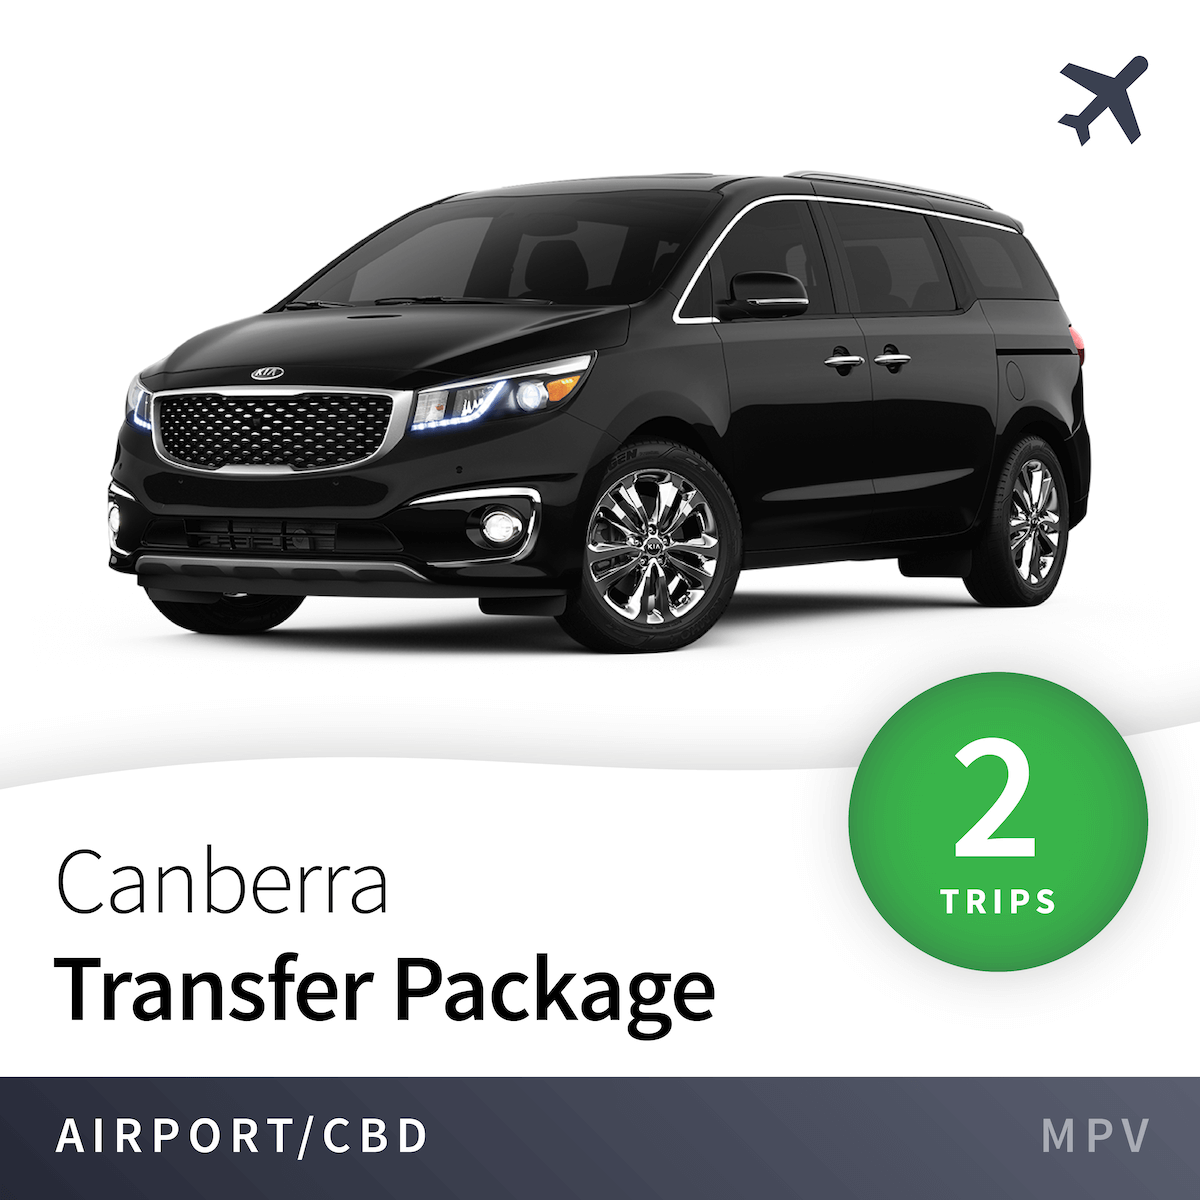 Canberra Airport Transfer Package - MPV (2 Trips) 1